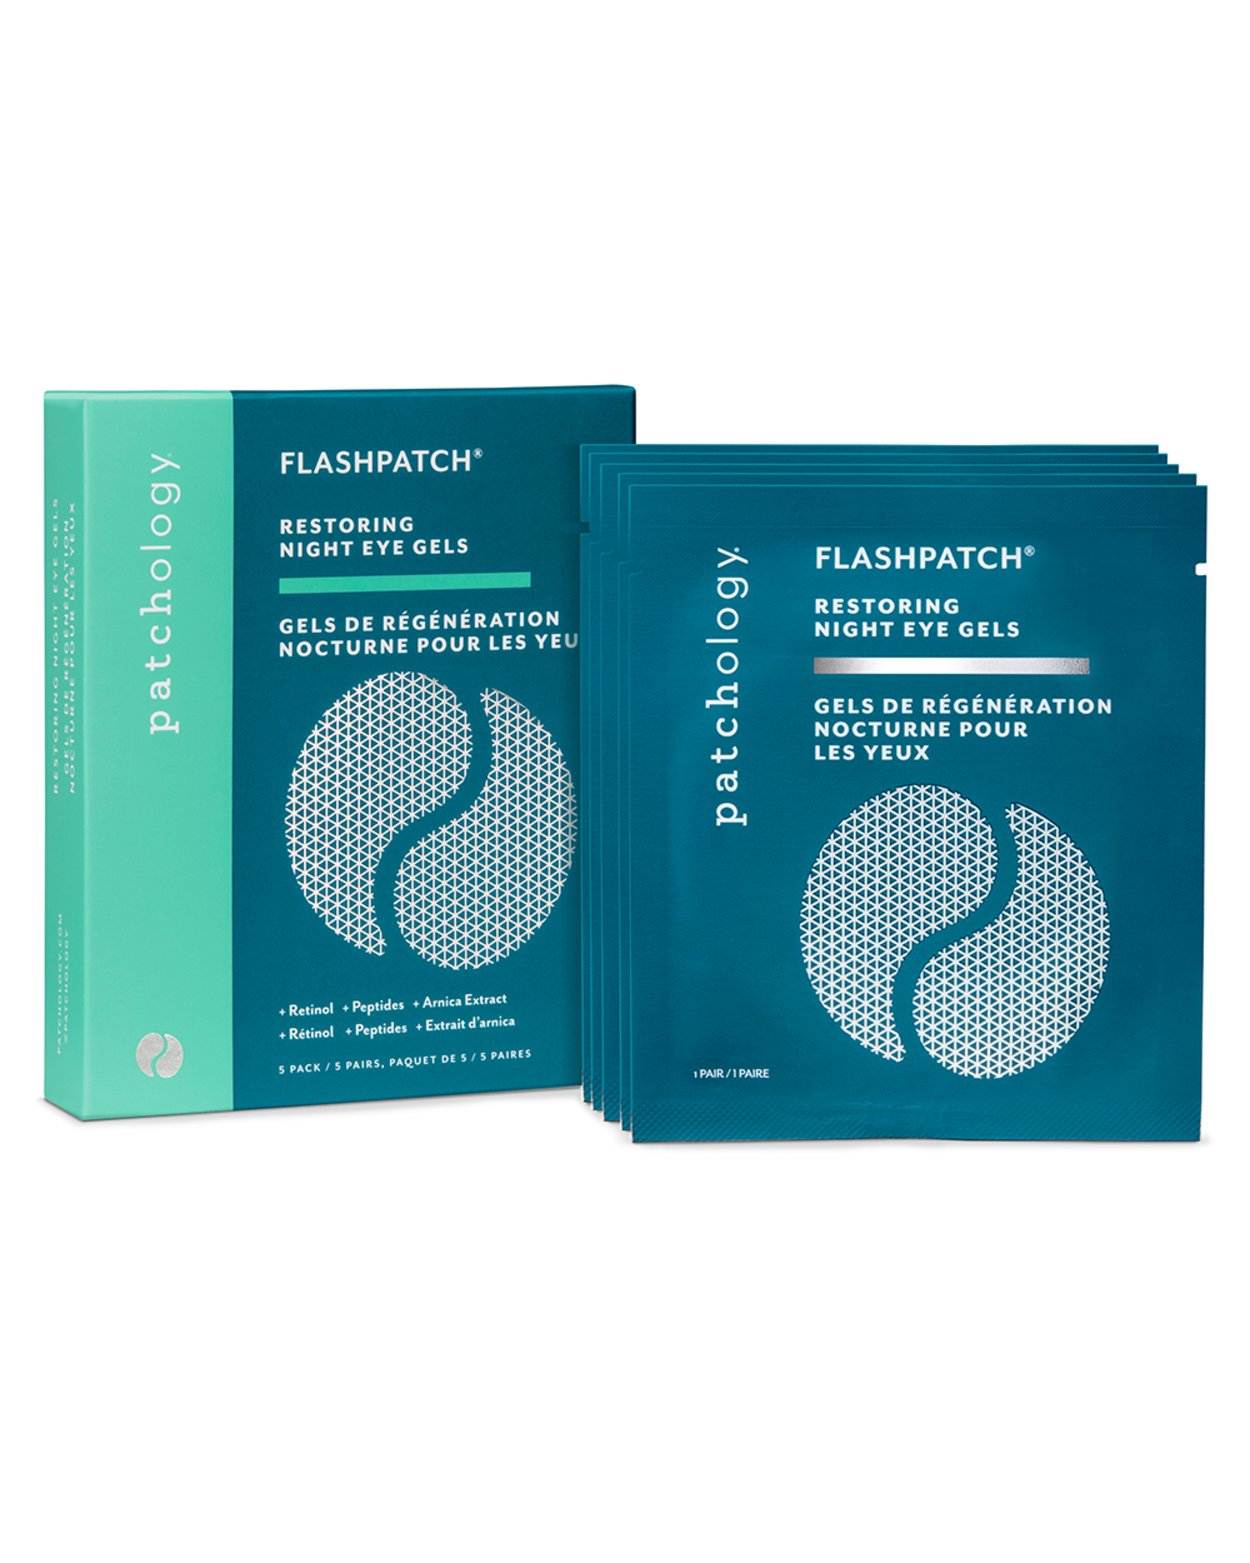 FlashPatch Restoring Night Eye Gels - Five Pairs